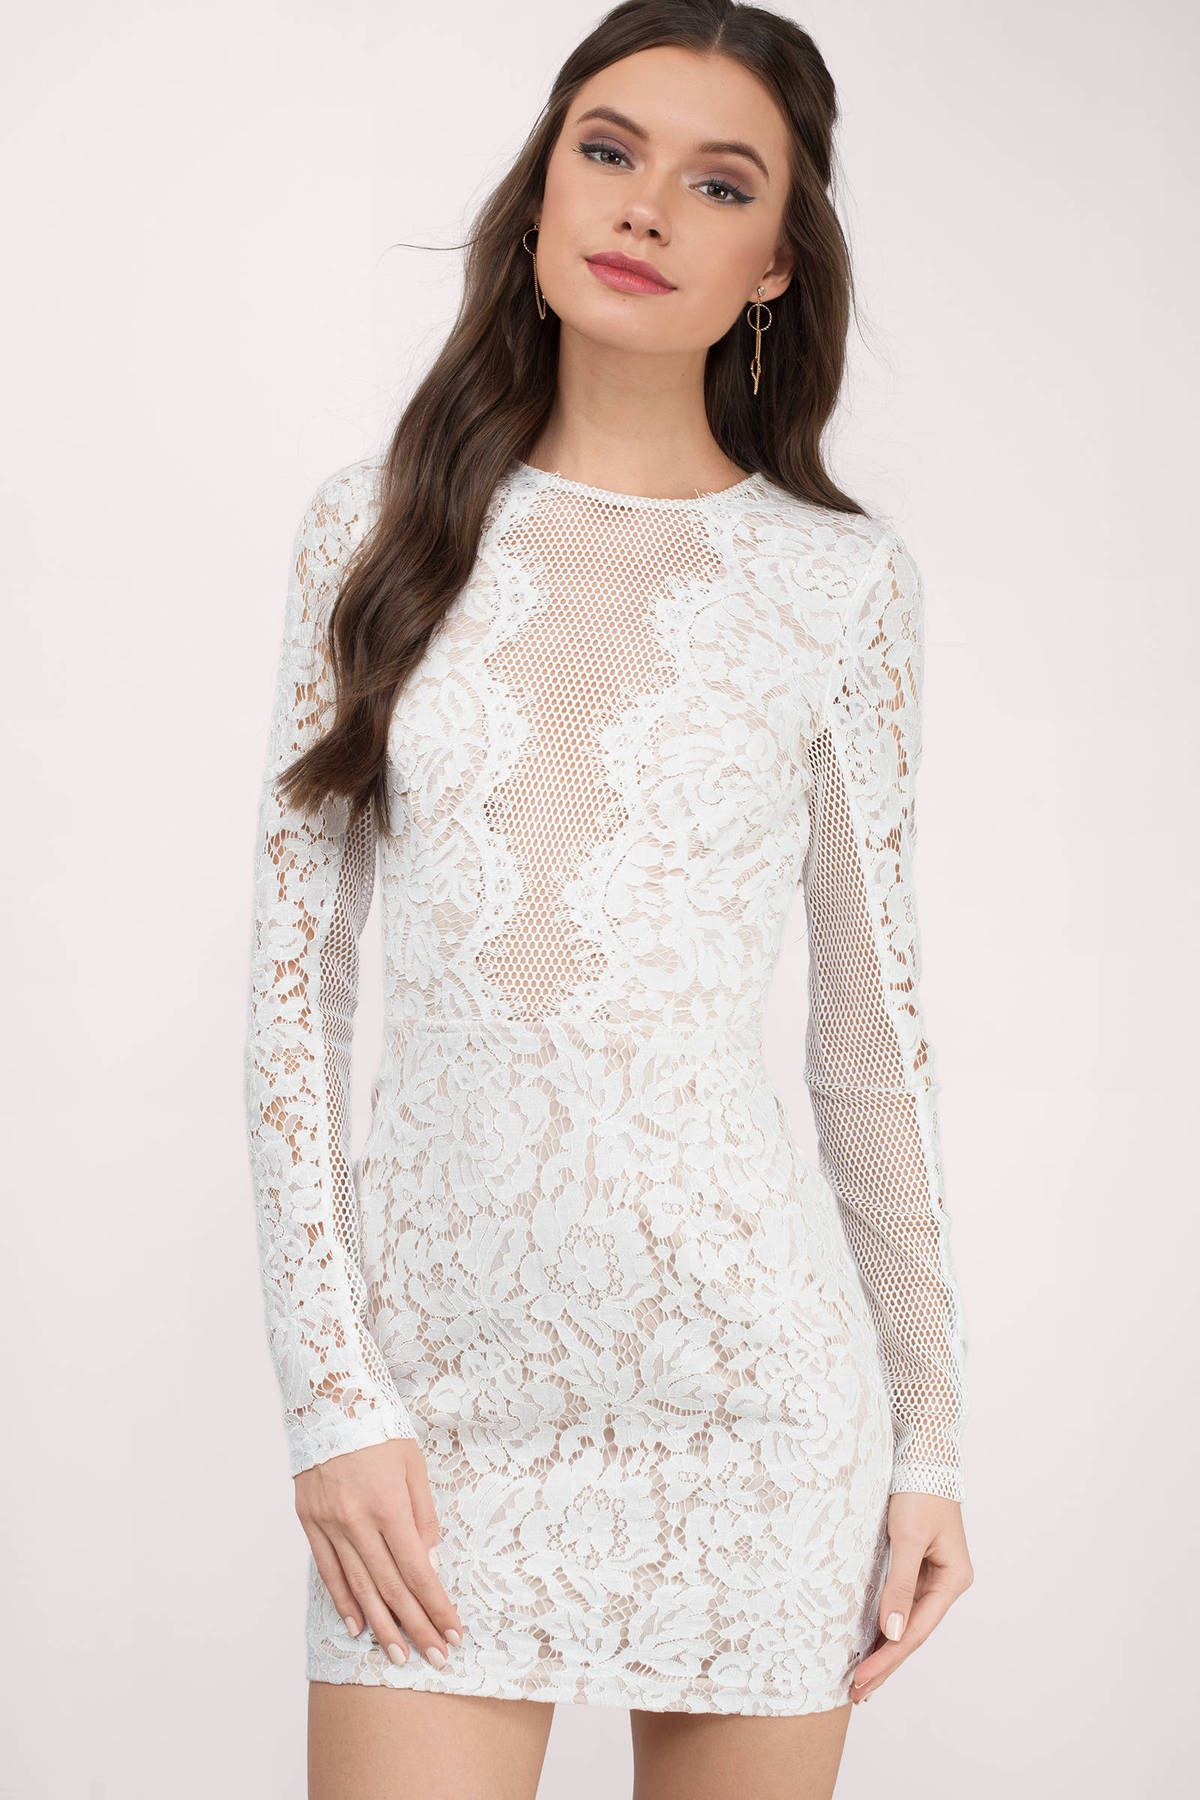 Raven lace bodycon dress bodycon dress graduation dresses and